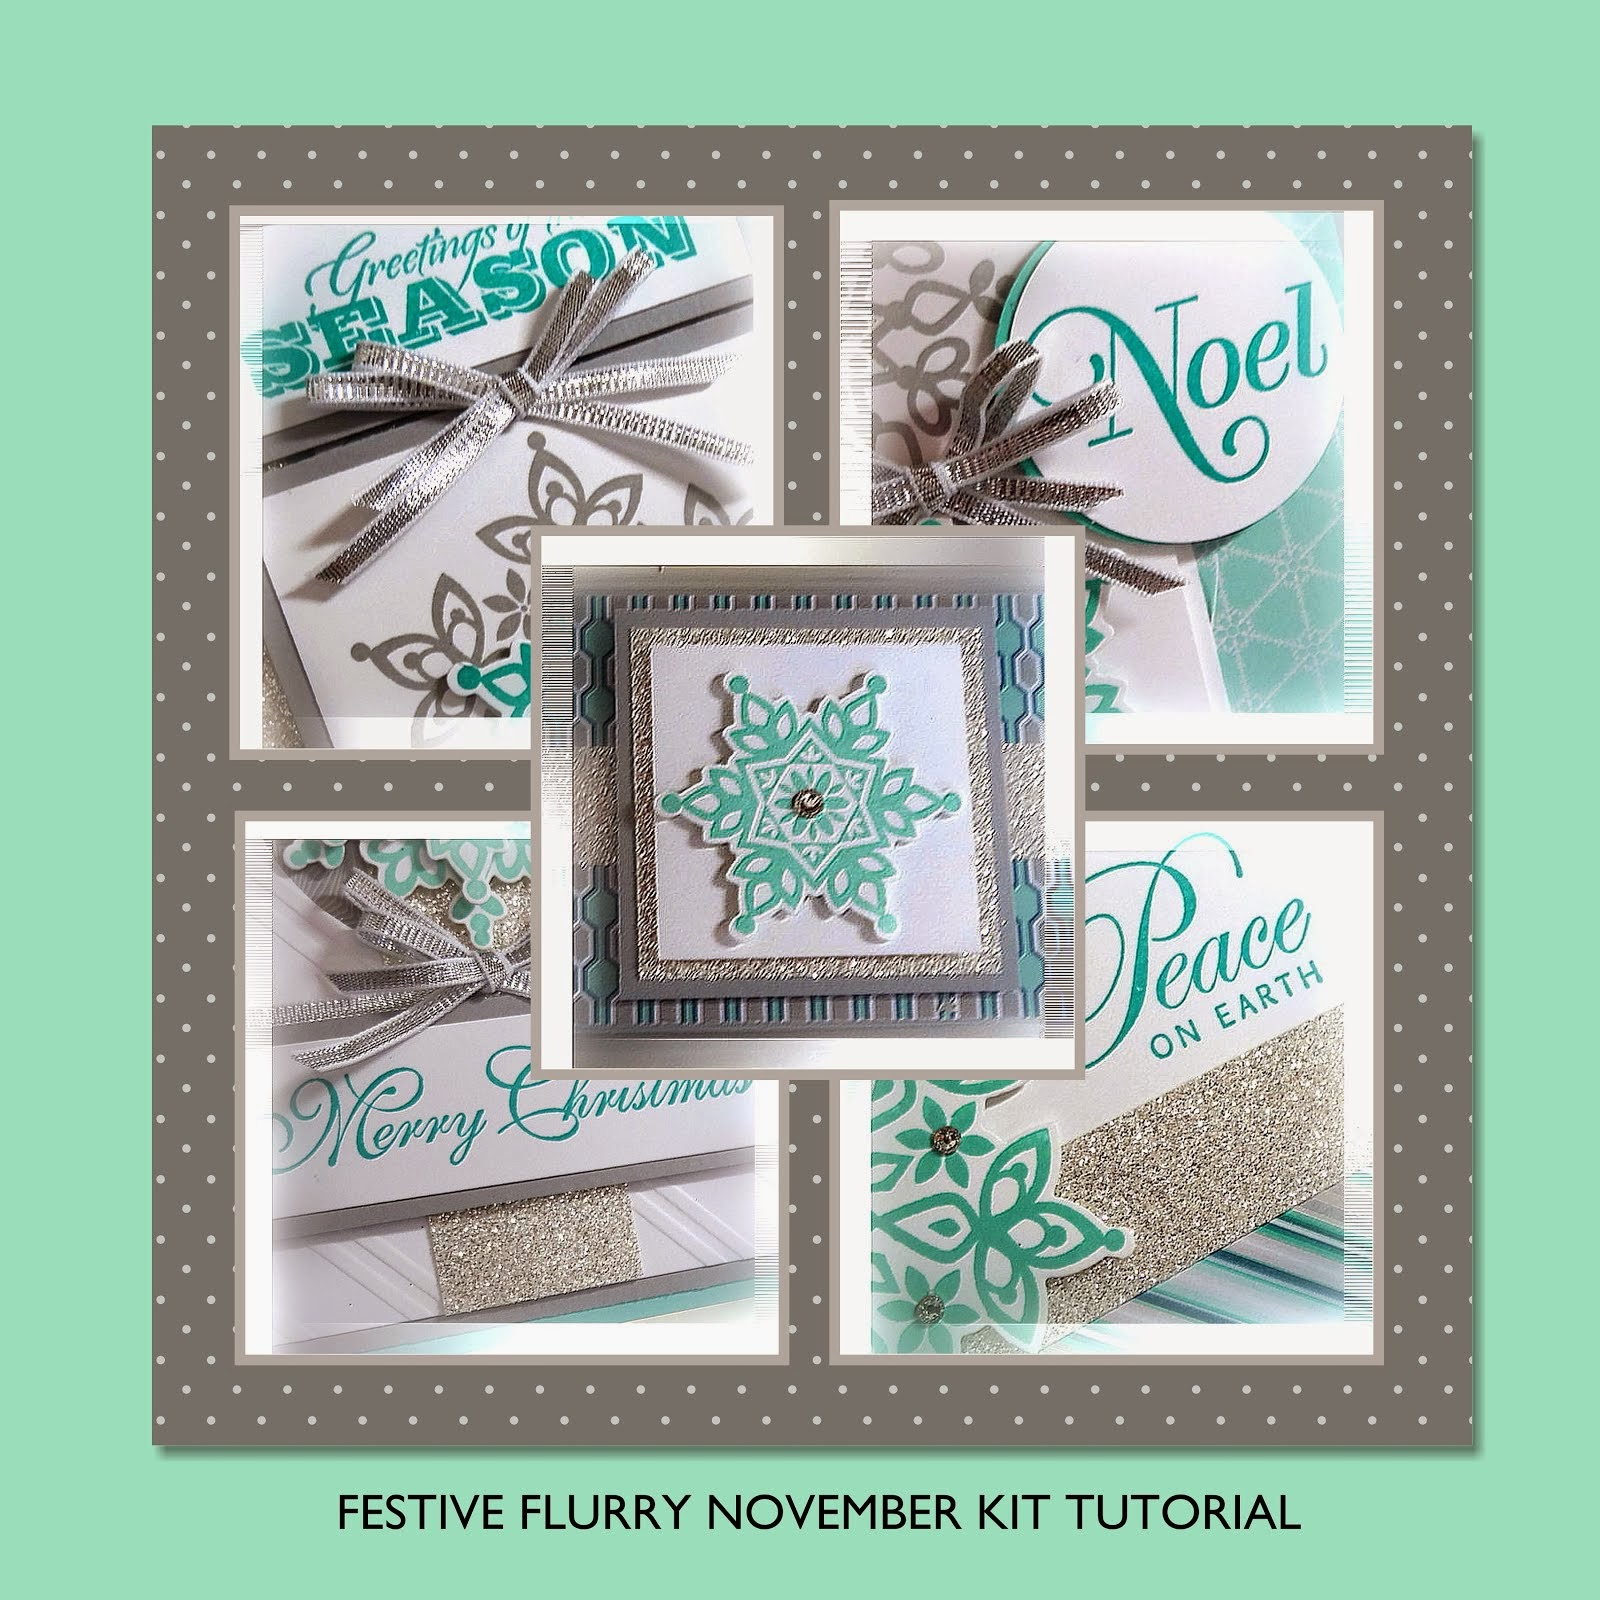 Festive Flurry November Kit Tutorial